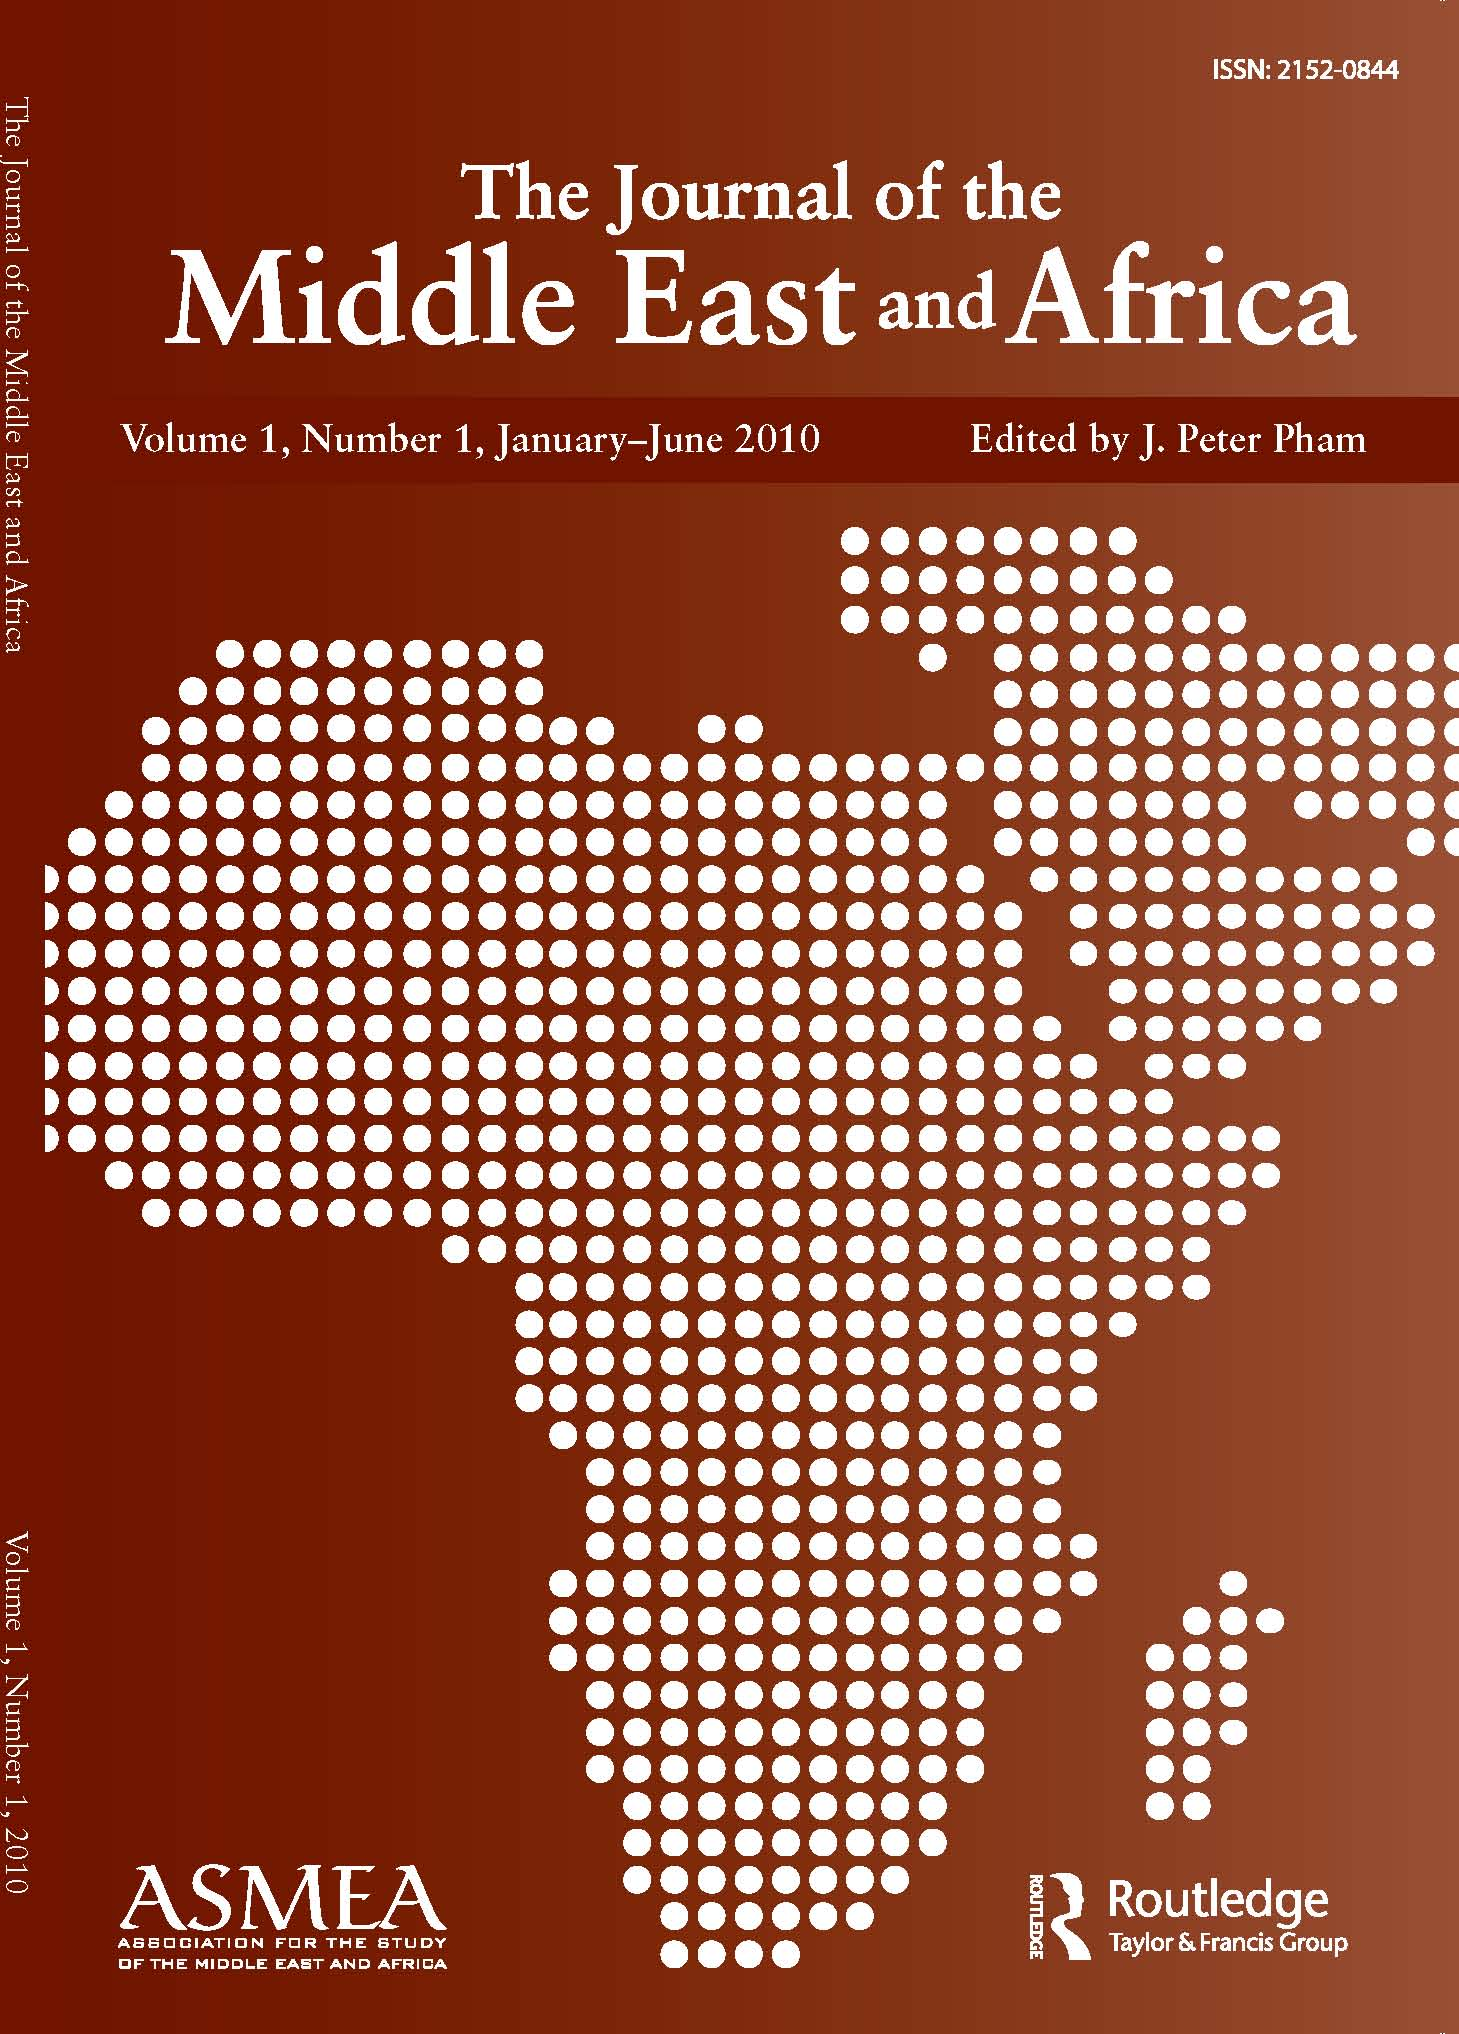 The Journal of the Middle East and Africa